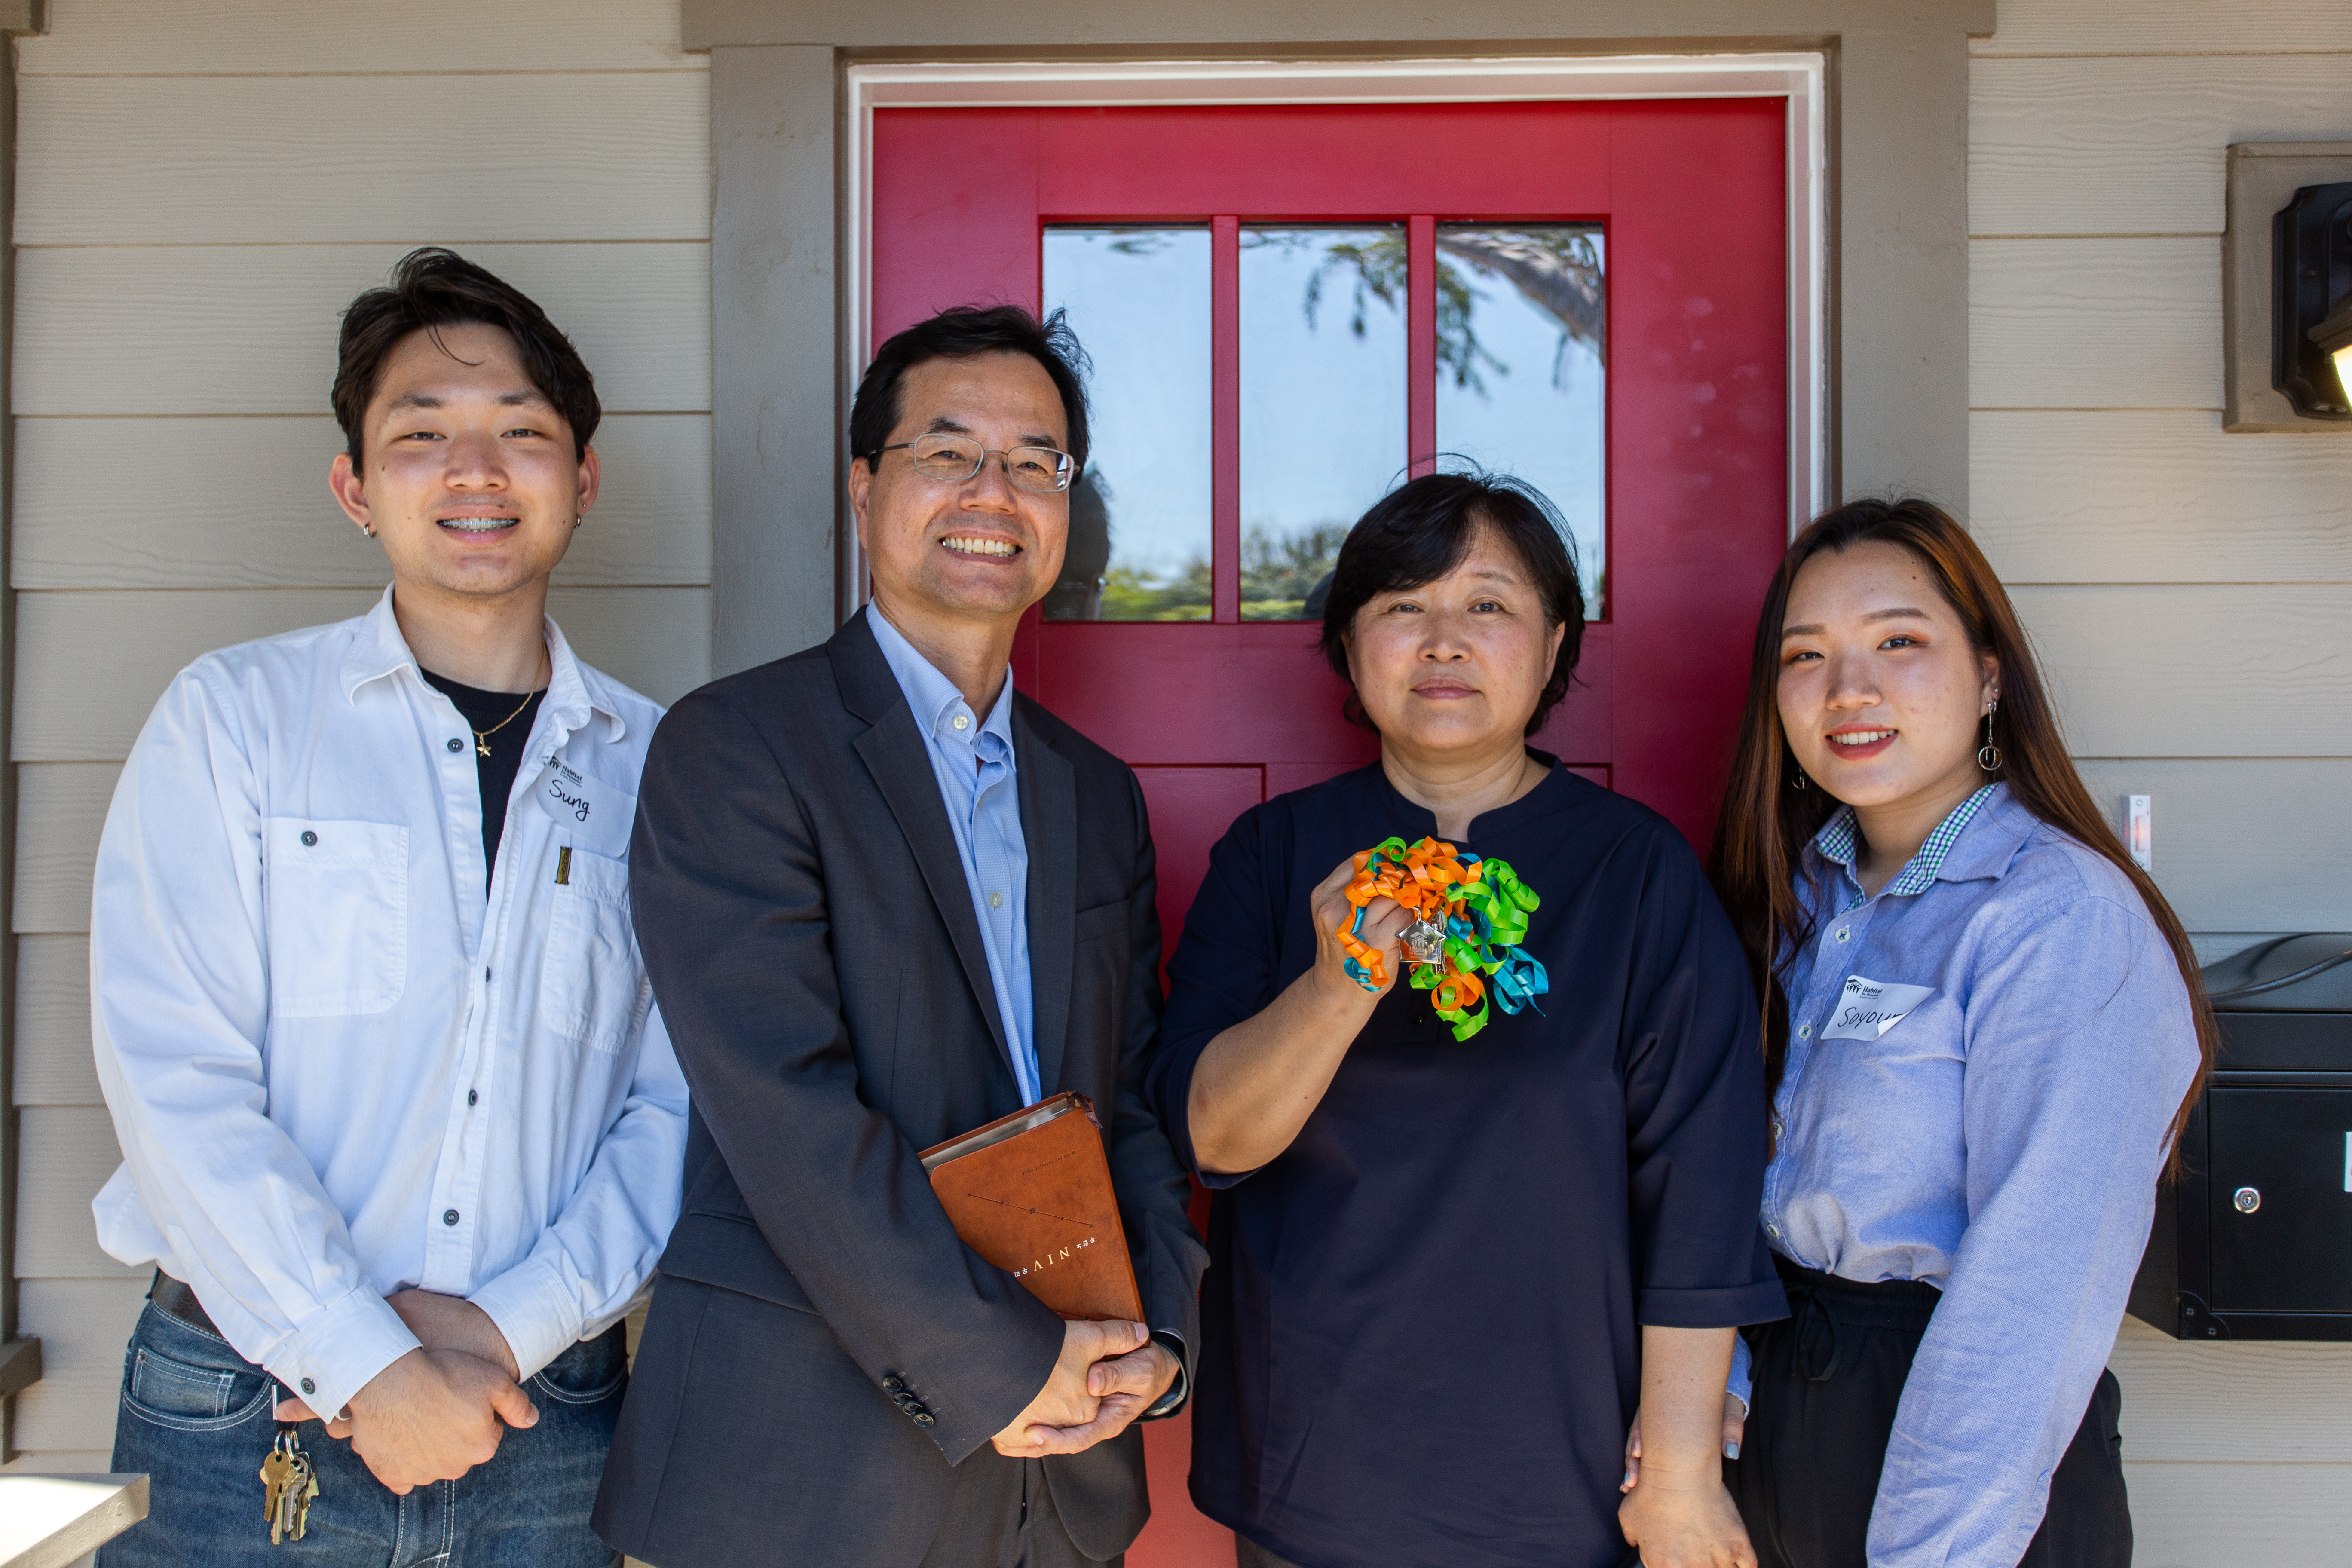 The Park Family in front of their new front door smiling for a group photo with the keys to their new home and bible given to them during the home dedication.